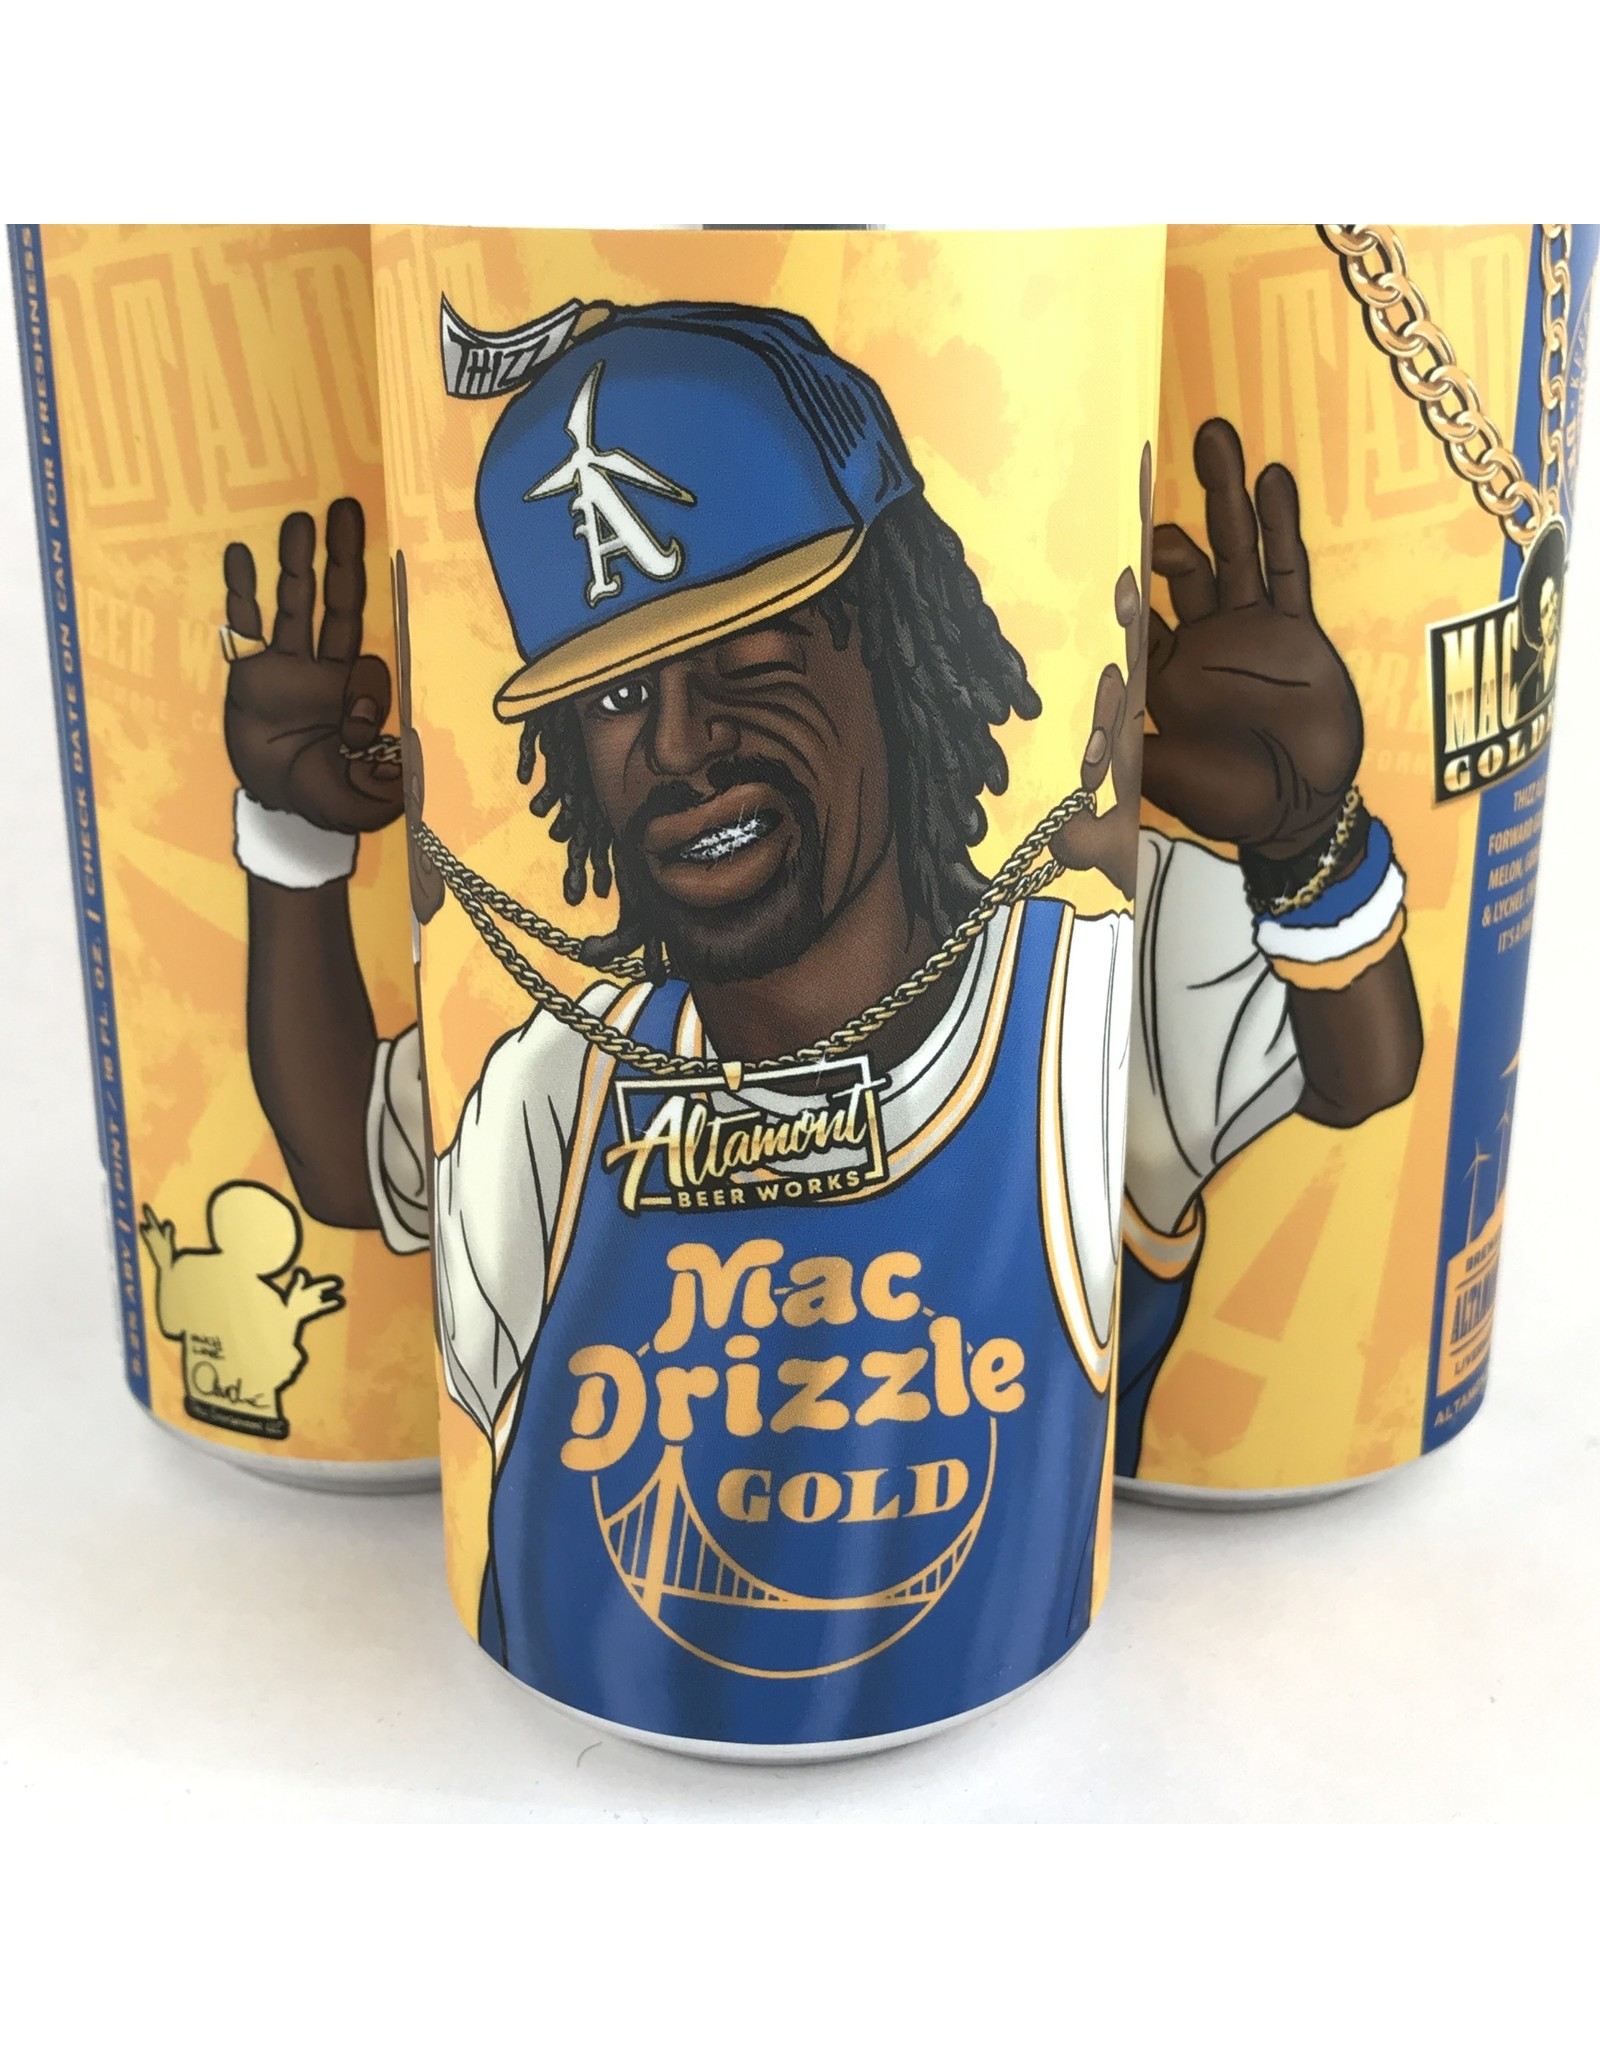 Altamont Beer Works Gold Mac Drizzle 4 pack